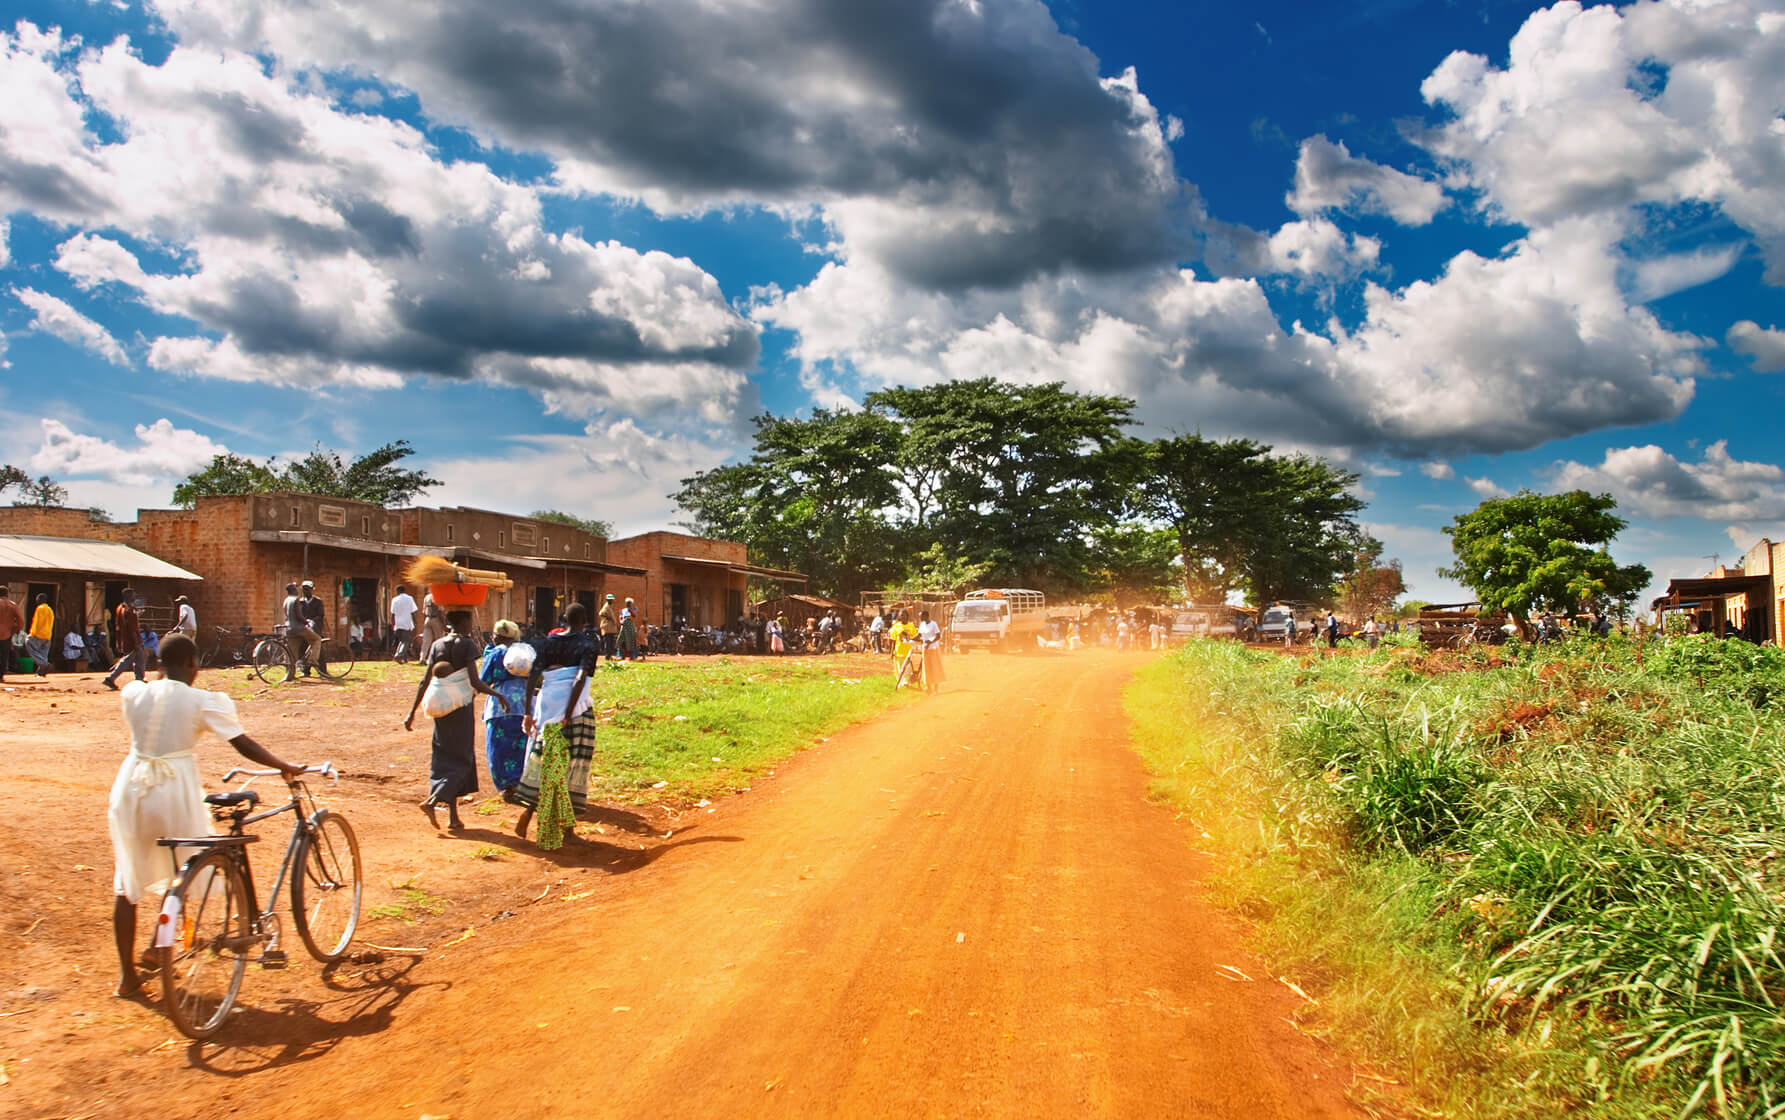 Houston, Texas to Entebbe, Uganda for only $588 roundtrip (Oct-May dates)